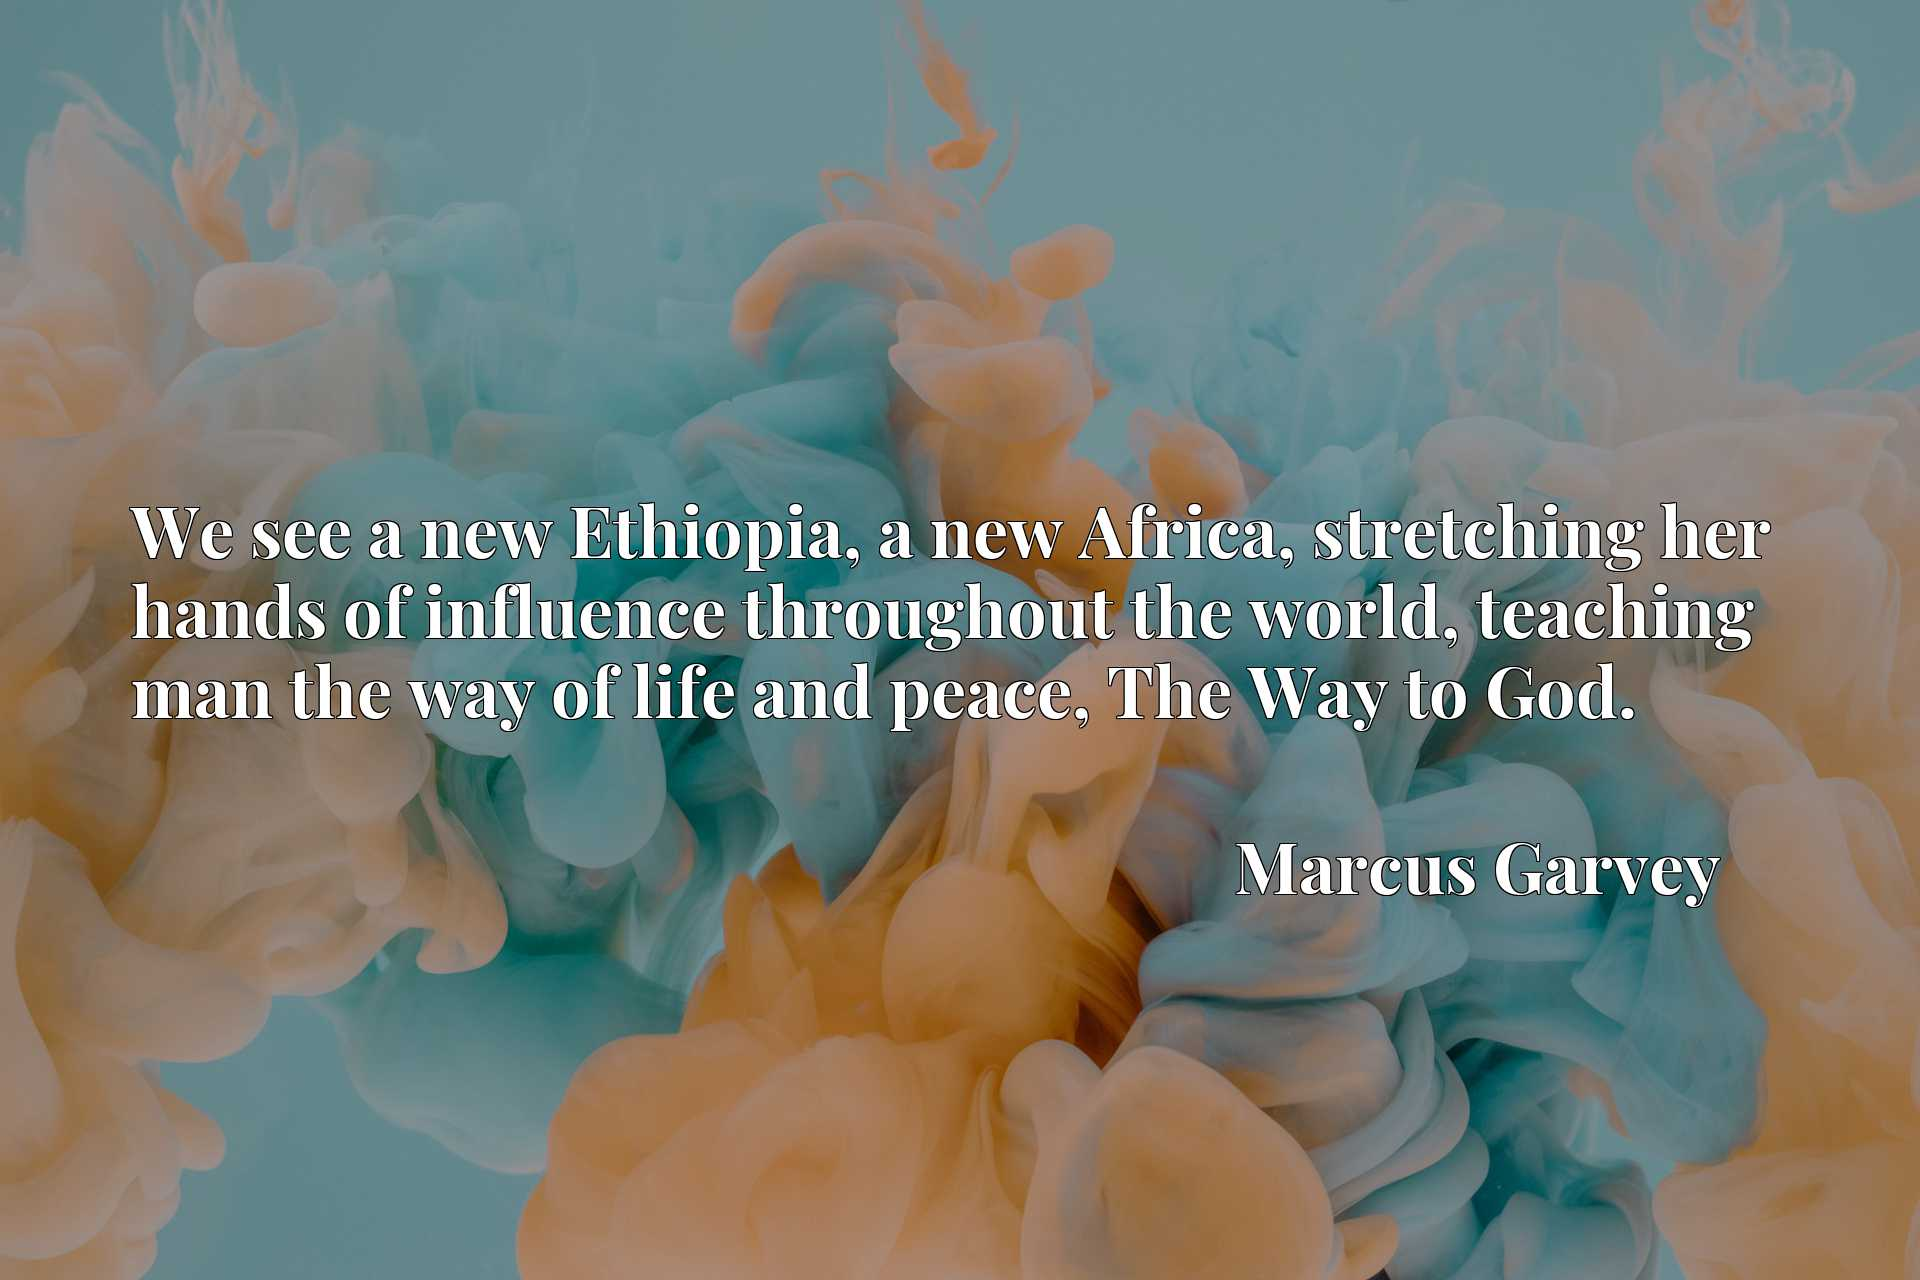 We see a new Ethiopia, a new Africa, stretching her hands of influence throughout the world, teaching man the way of life and peace, The Way to God.